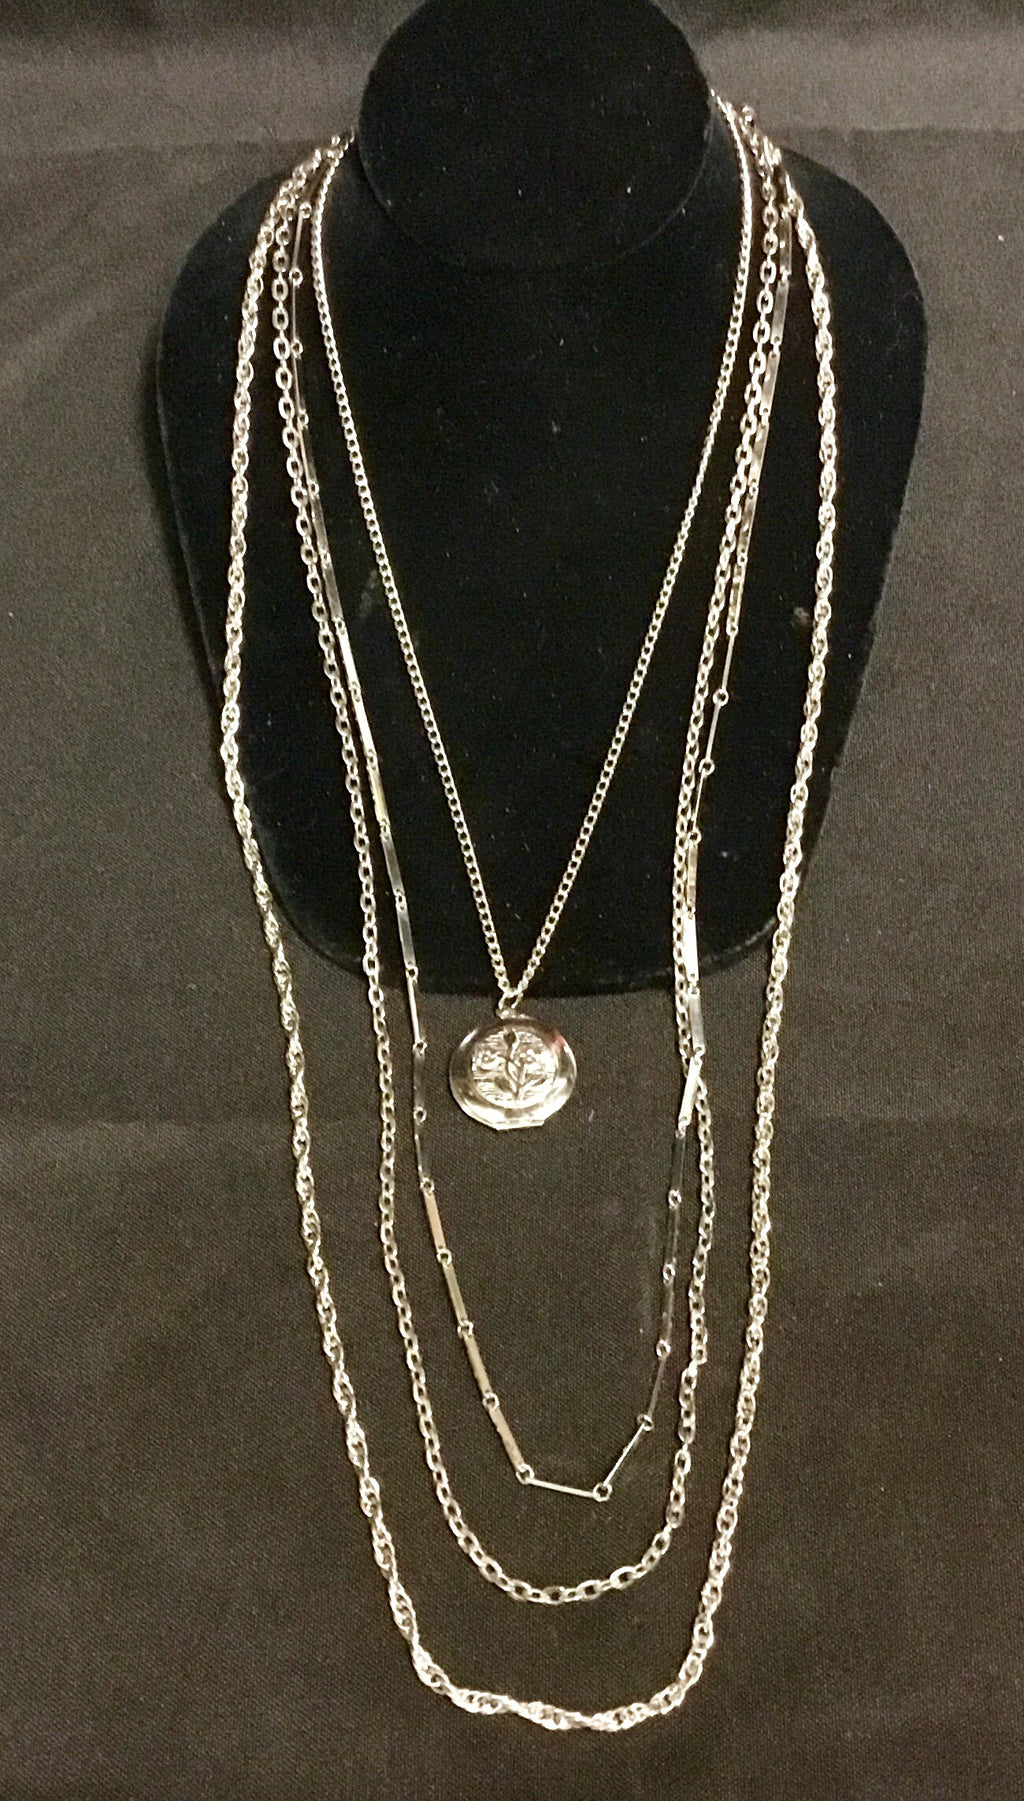 Vintage silver strand necklace with locket